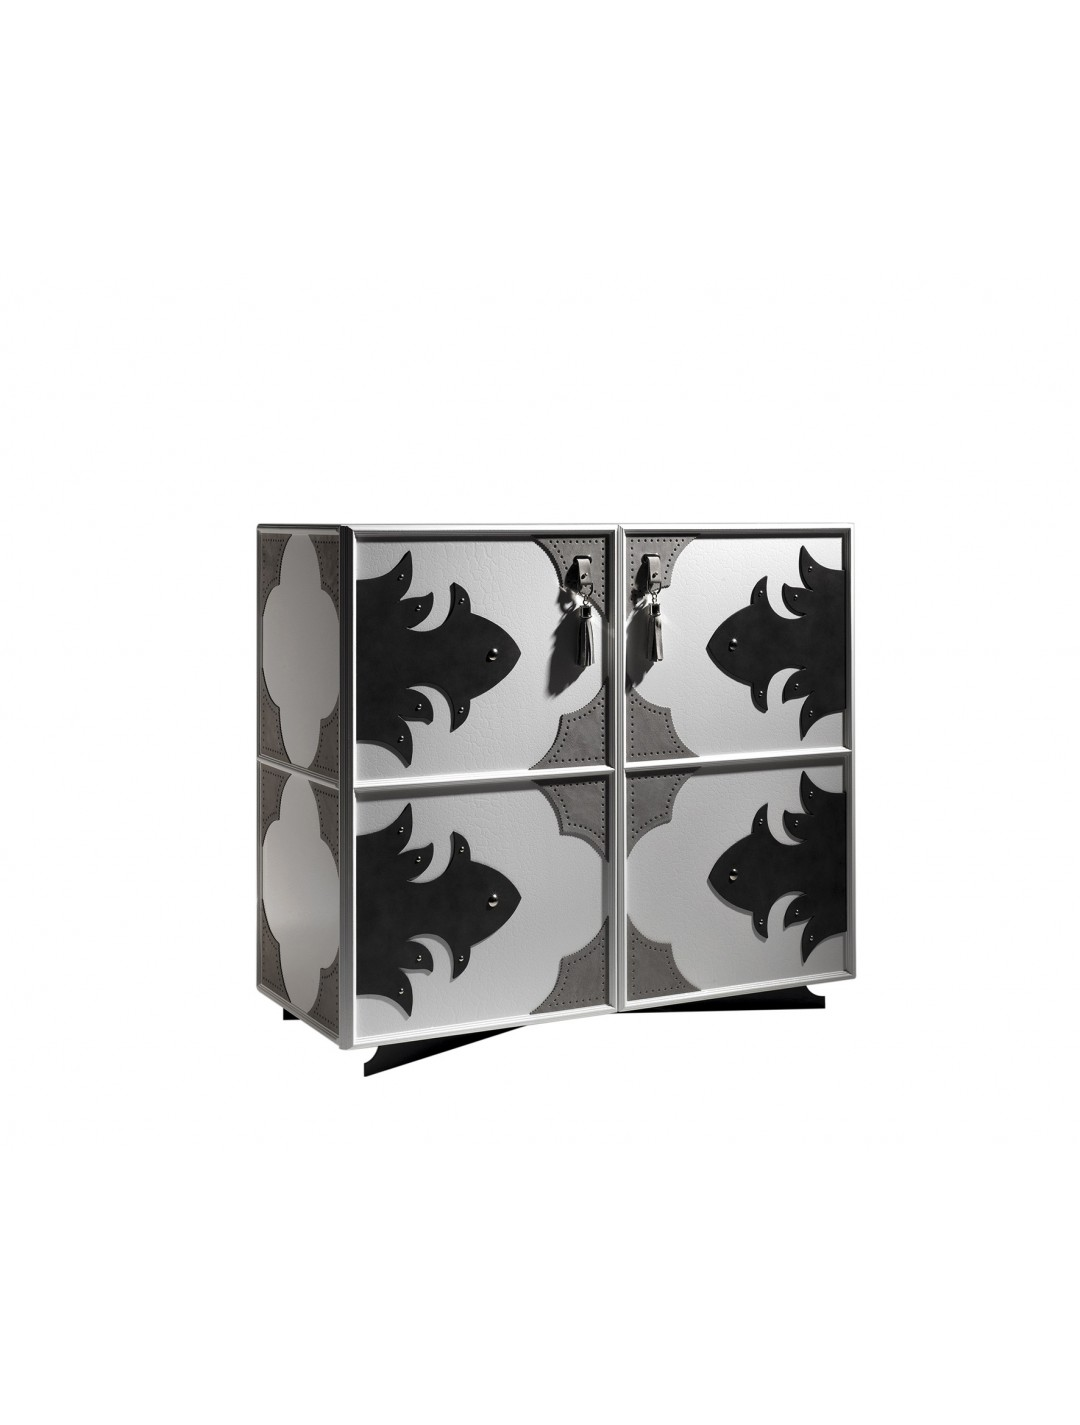 VALENTINA HIGH CABINET CUSTOM MADE S1225, LUXOR EDITION, SIZE 121*52*107H, FINISH: WHITE CRACKELE ON WOOD, WITH LEATHER DECORATION ON 4 SIDES,  BLACK ONYX ON IRON LEGS, NICKEL BRASS DETAILS,  WITH TV ELEVATOR MECHANISM